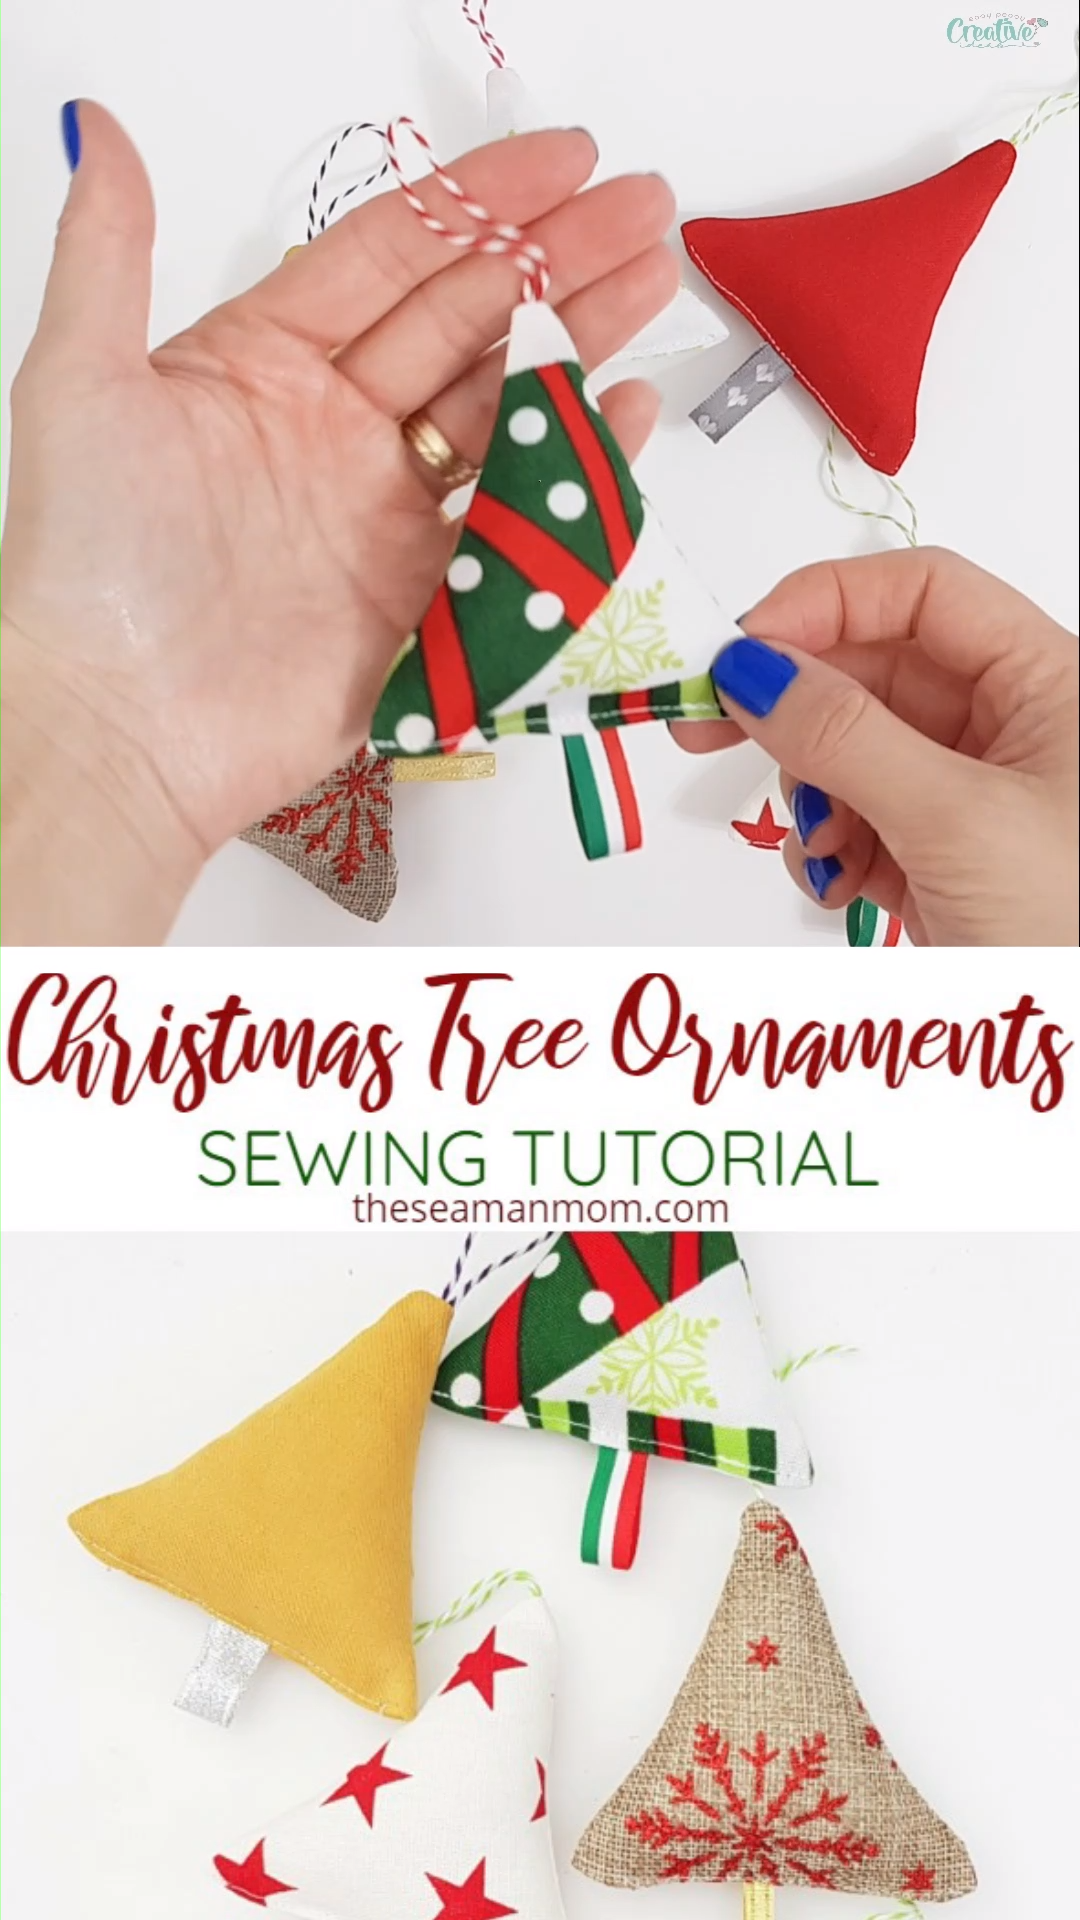 This year add a dose of cuteness to your Christmas tree when you make your own fabric Christmas ornaments! These fabric Christmas tree ornaments are super easy and quick to sew and a great scrap project!  #easypeasycreativeideas #christmas #sew #sewing #sewingforthehome #sewingforbeginners #beginnersewing #beginnersewingprojects #christmasdecor #christmastree #easysewingprojects #scraps #fabriccrafts